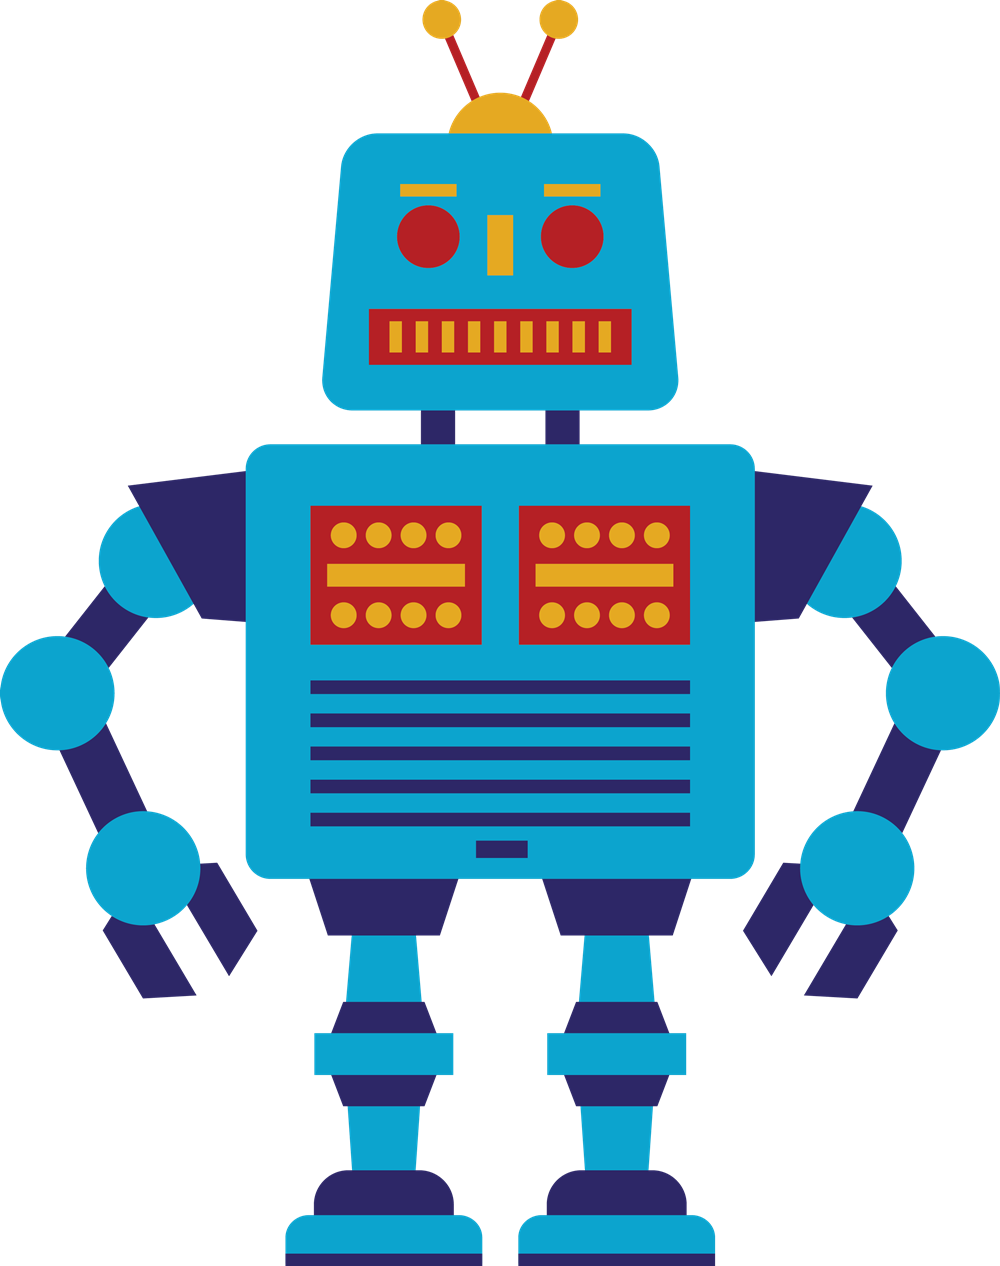 Robot clipart #15, Download drawings